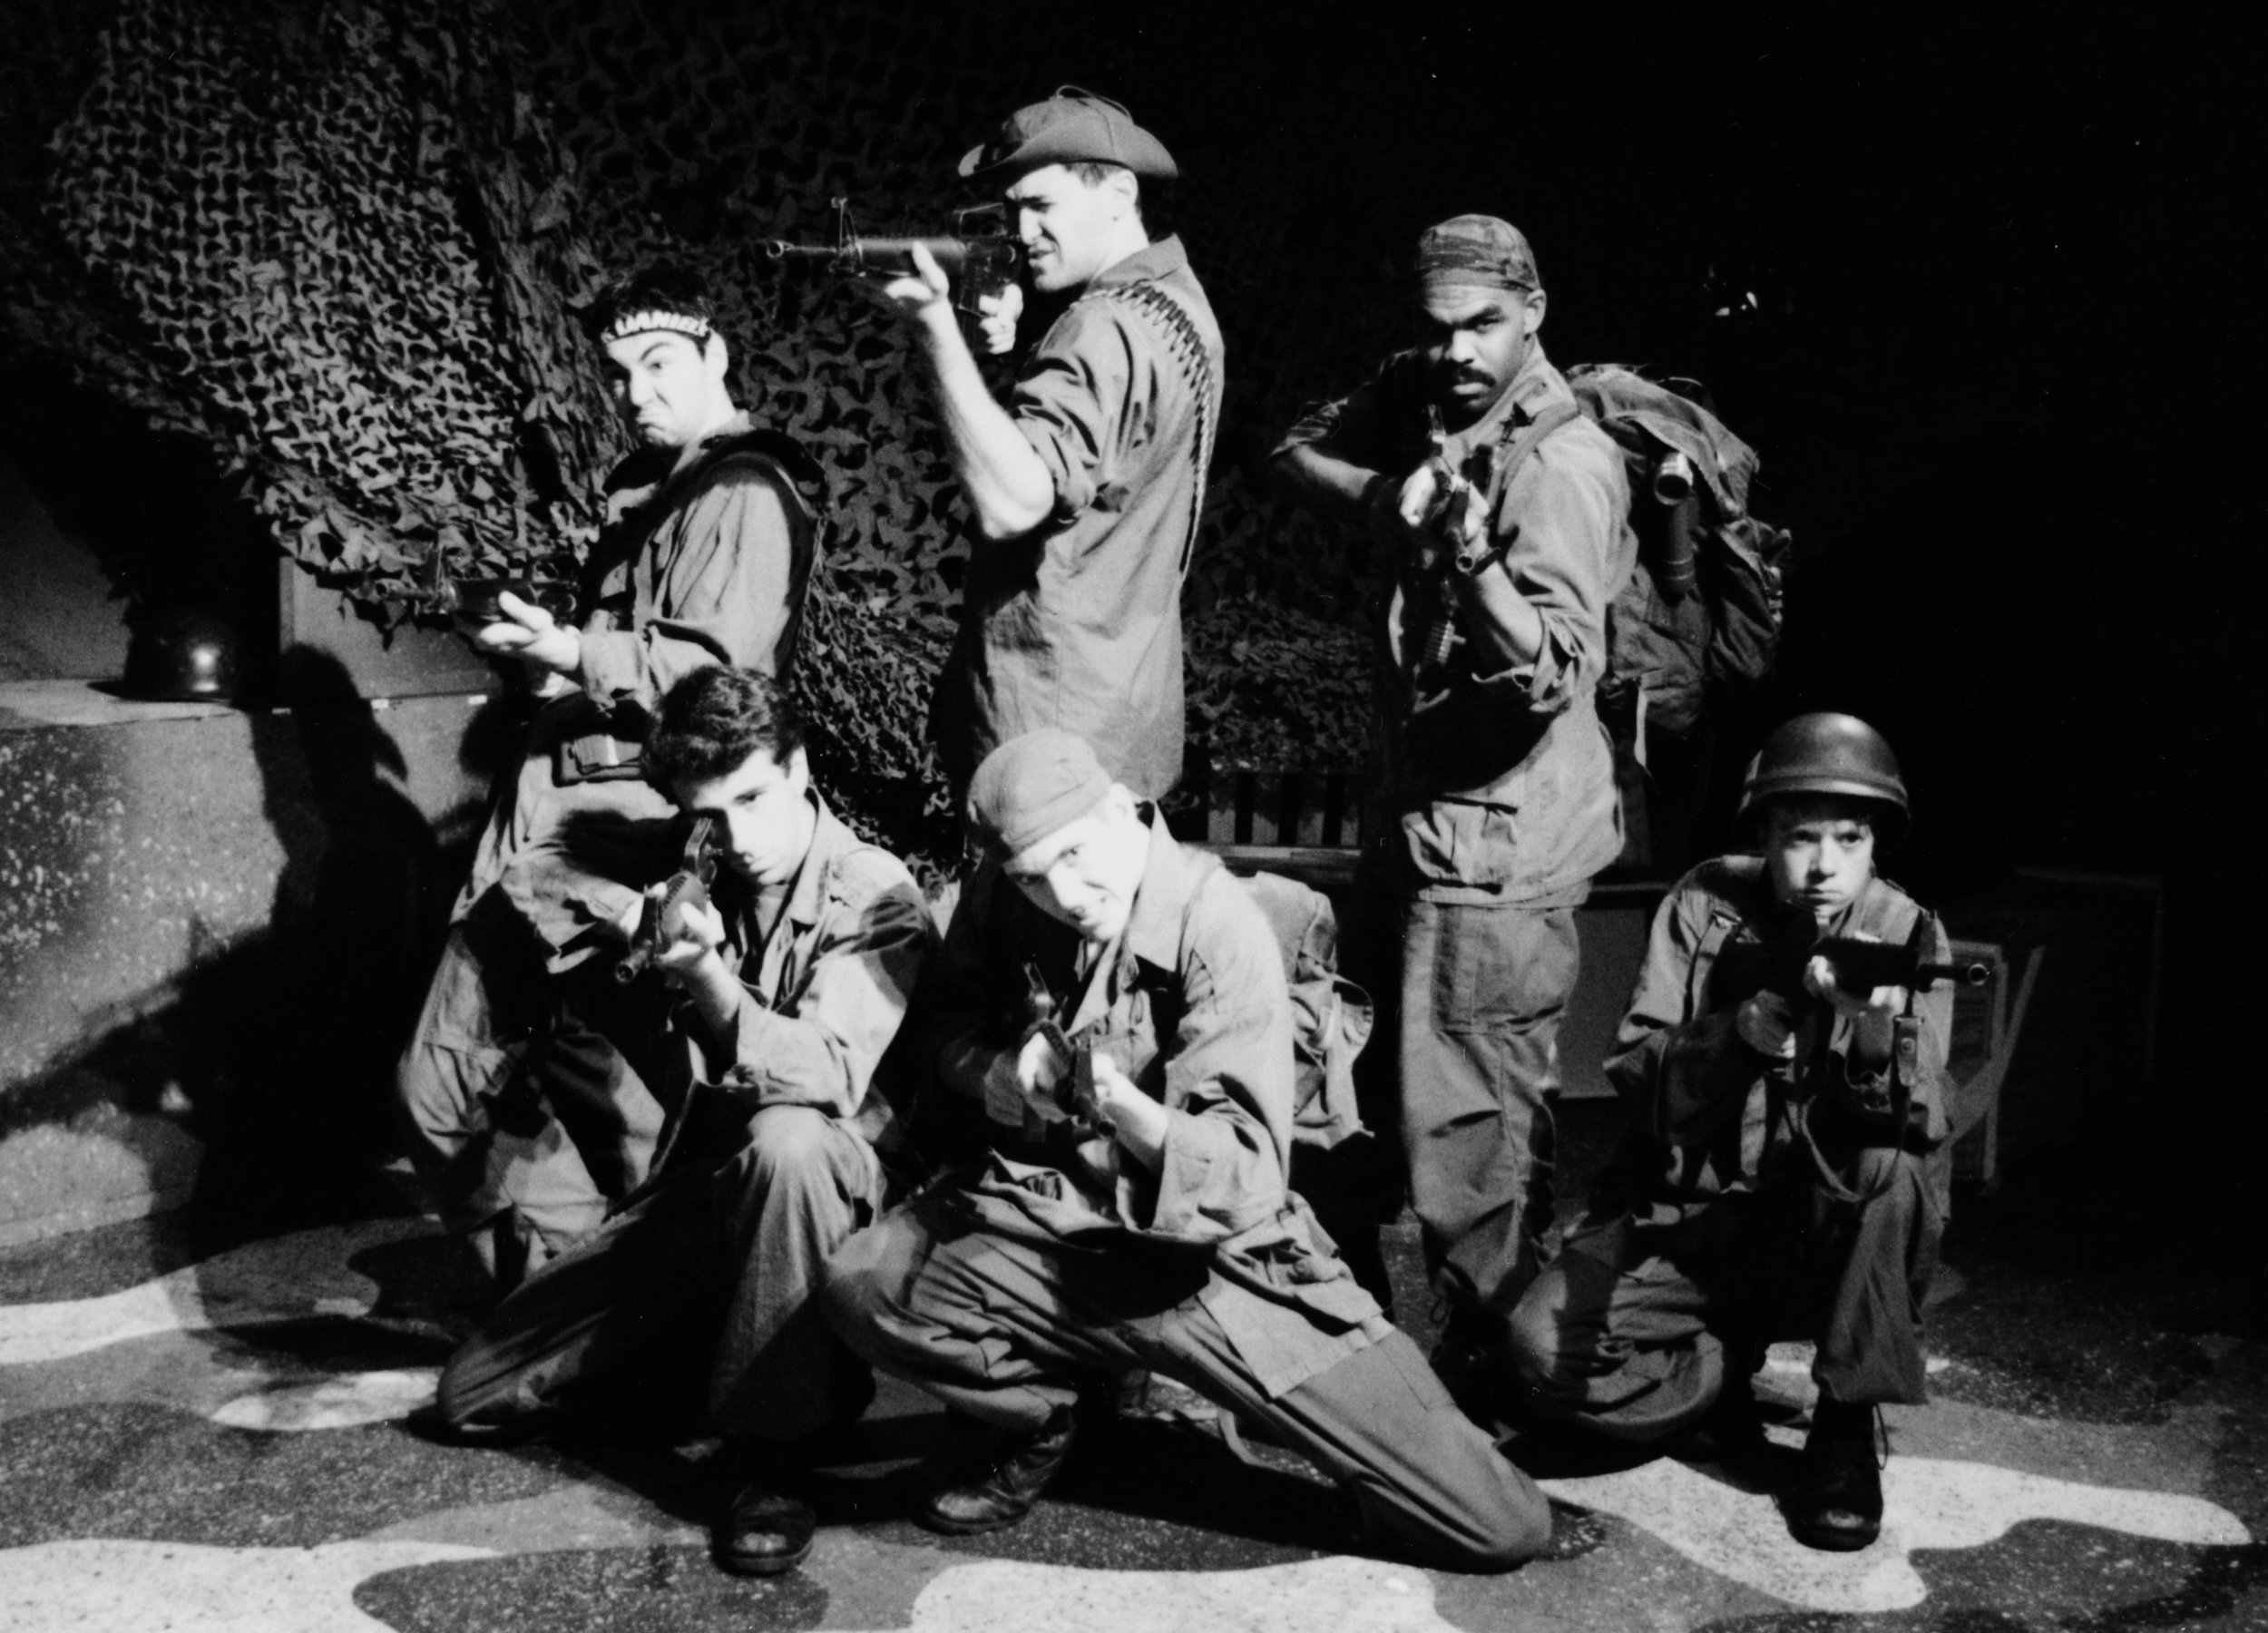 Chris Solari (Scooter), Craig Bilsky (Professor), Scott Donnelly (Little John), William Vogt (Dinky Dau), Gene Fereaud (Habu), and Scott Freeburg (Baby San) in Draw the Sneck Productions'1996 | 1997 productions of  Tracers , directed by John Drouillard.  Photo by Paul Backer.